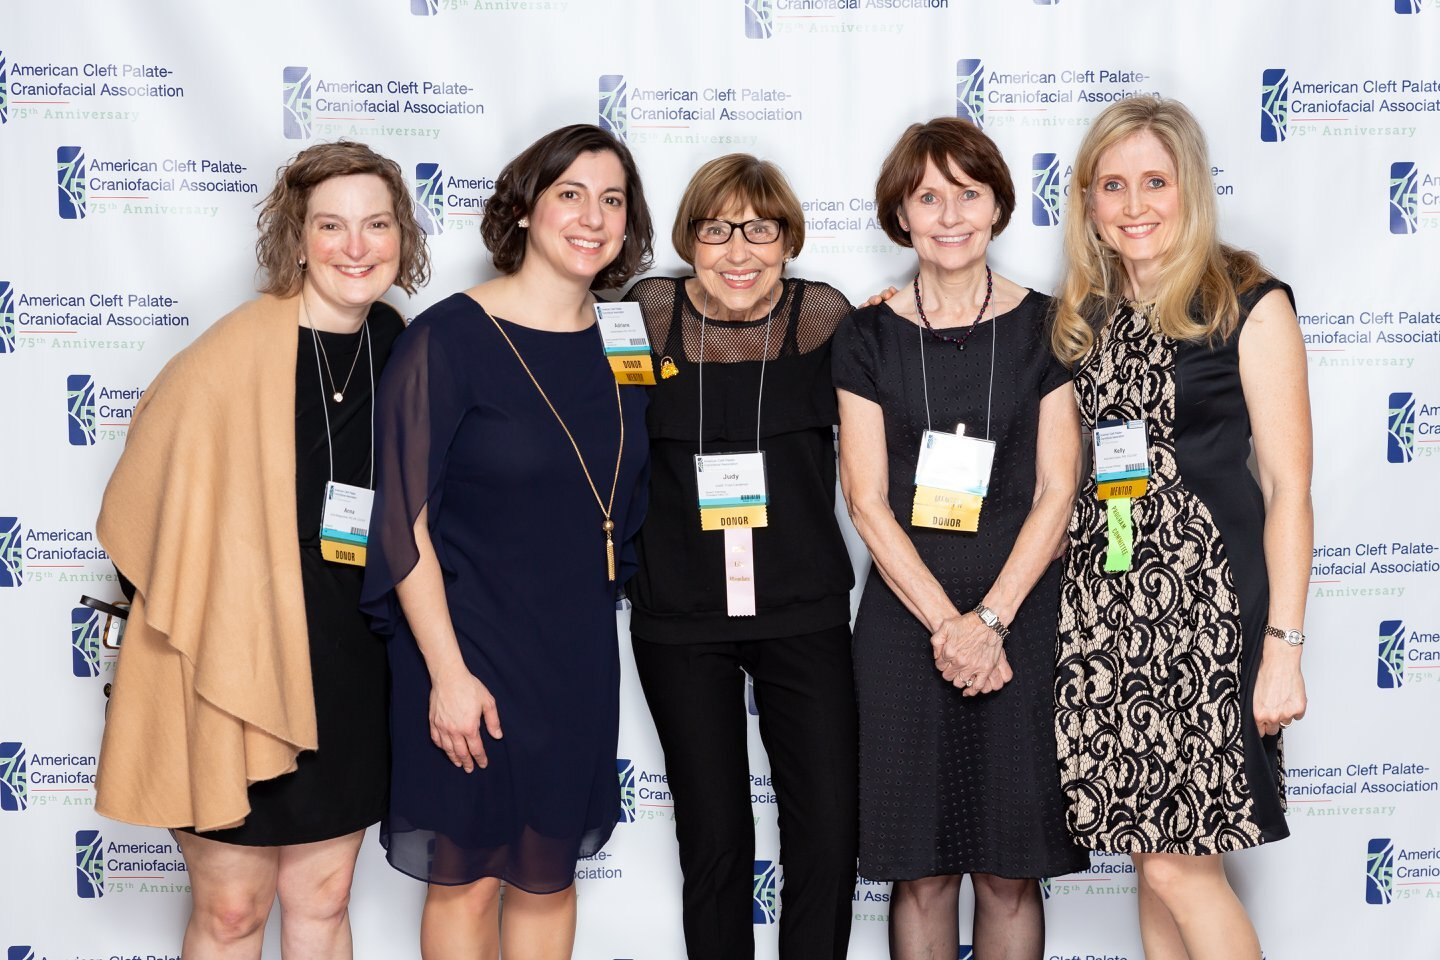 Speech Group Participants at 2018 ACPA Annual Meeting, Pittsburgh, PA    From Left to Right: A. Thurmes, A. Baylis, J. Trost-Cardamone, K. Chapman, K. Cordero